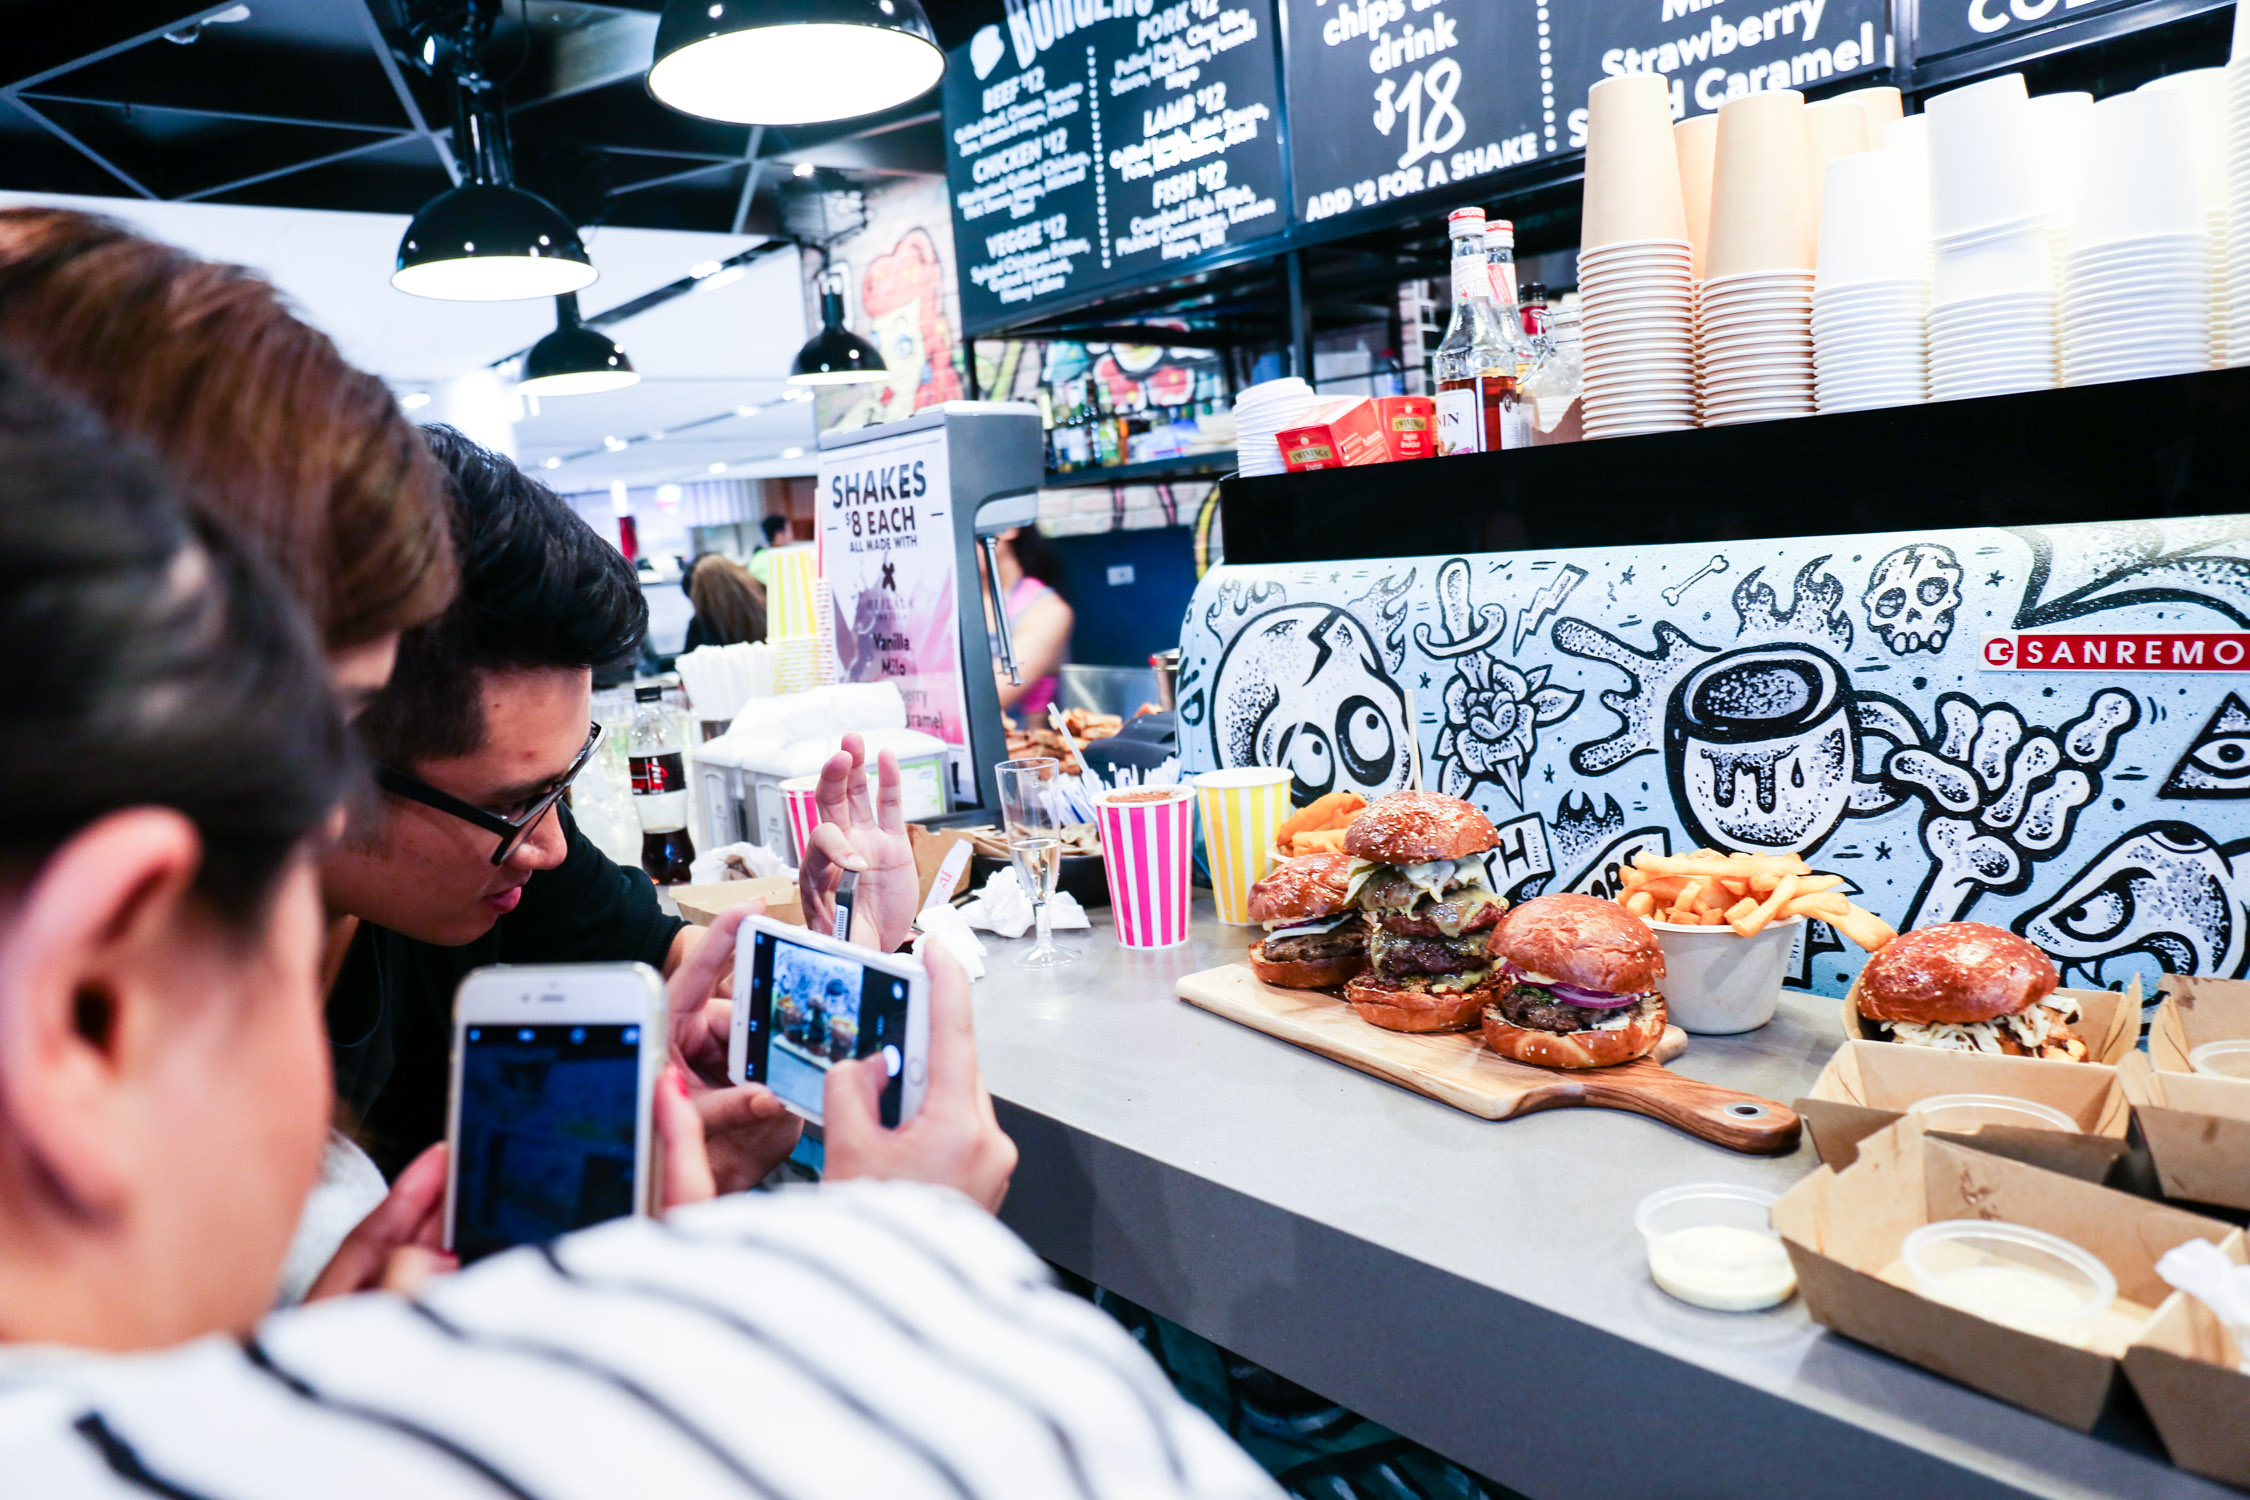 The Bamboo Garden hosted an exclusive launch event for influencers at the opening of Chur Burger Sydney Airport